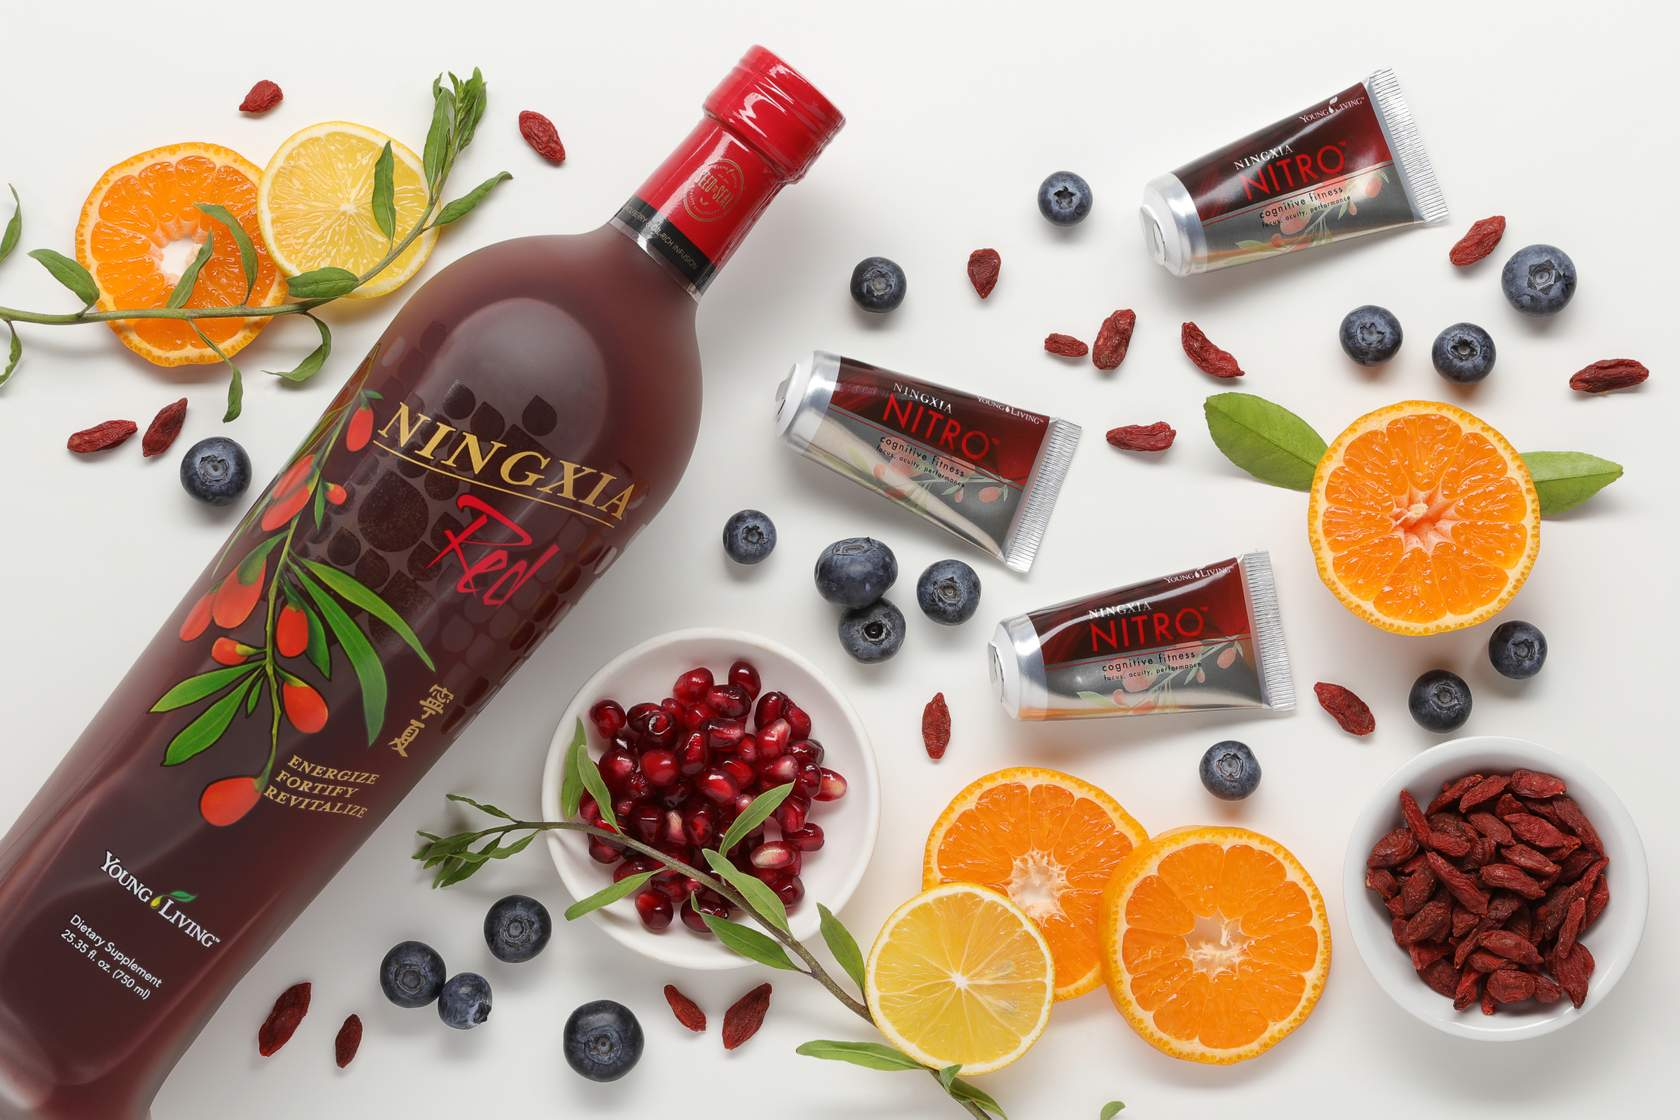 ningxia red, ningxia nitro, and wolfberries